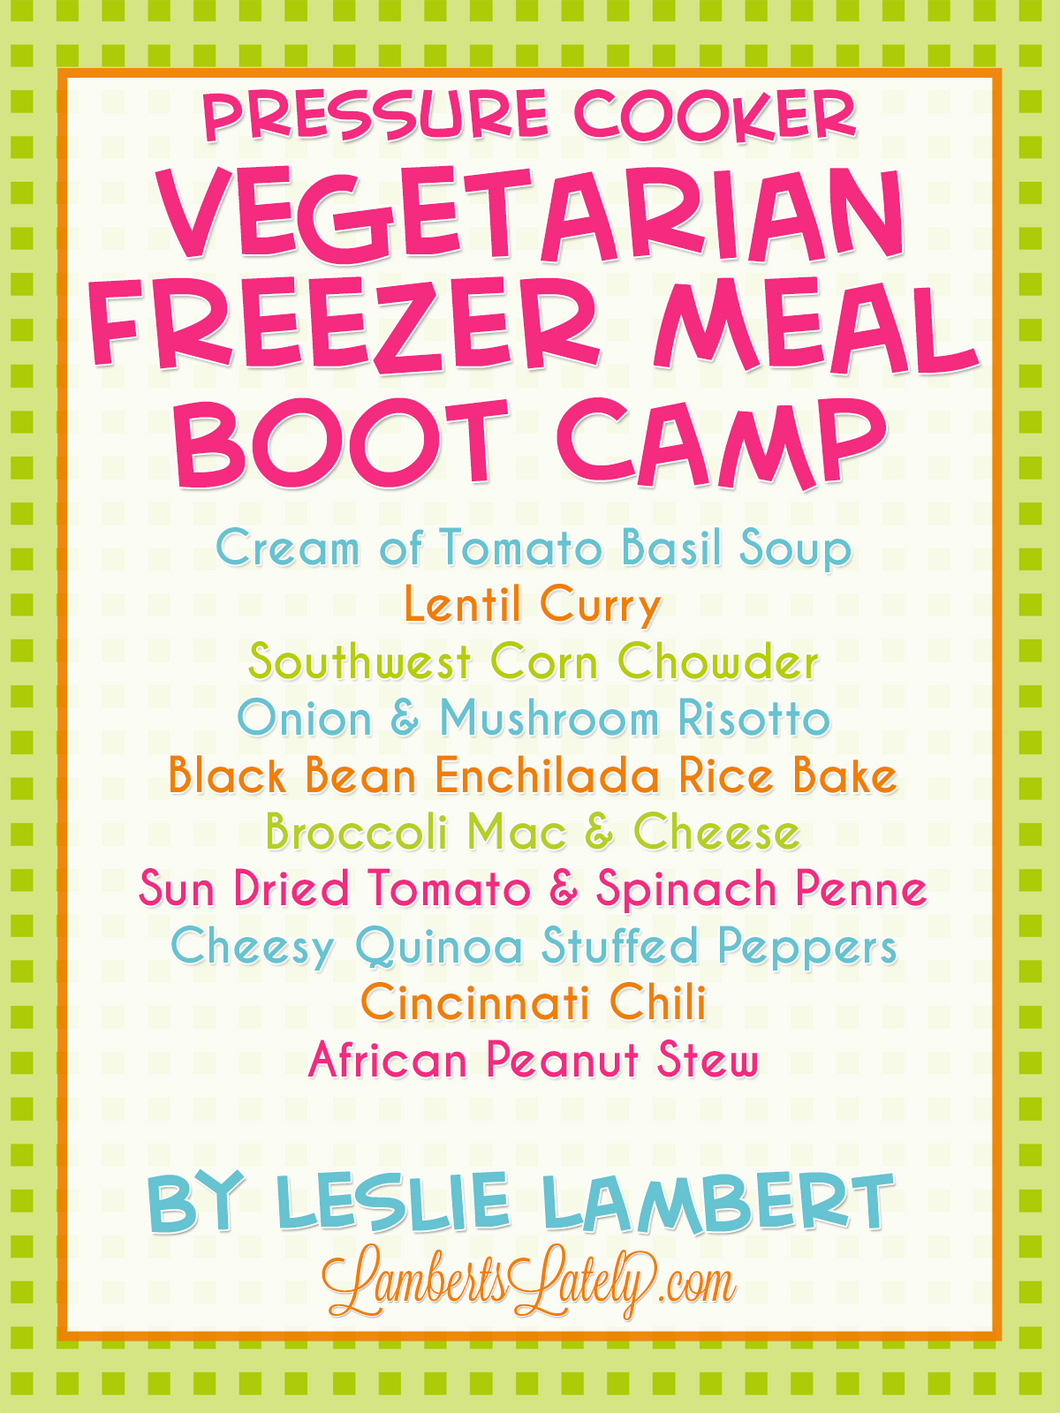 Vegetarian Pressure Cooker Freezer Meal Boot Camp